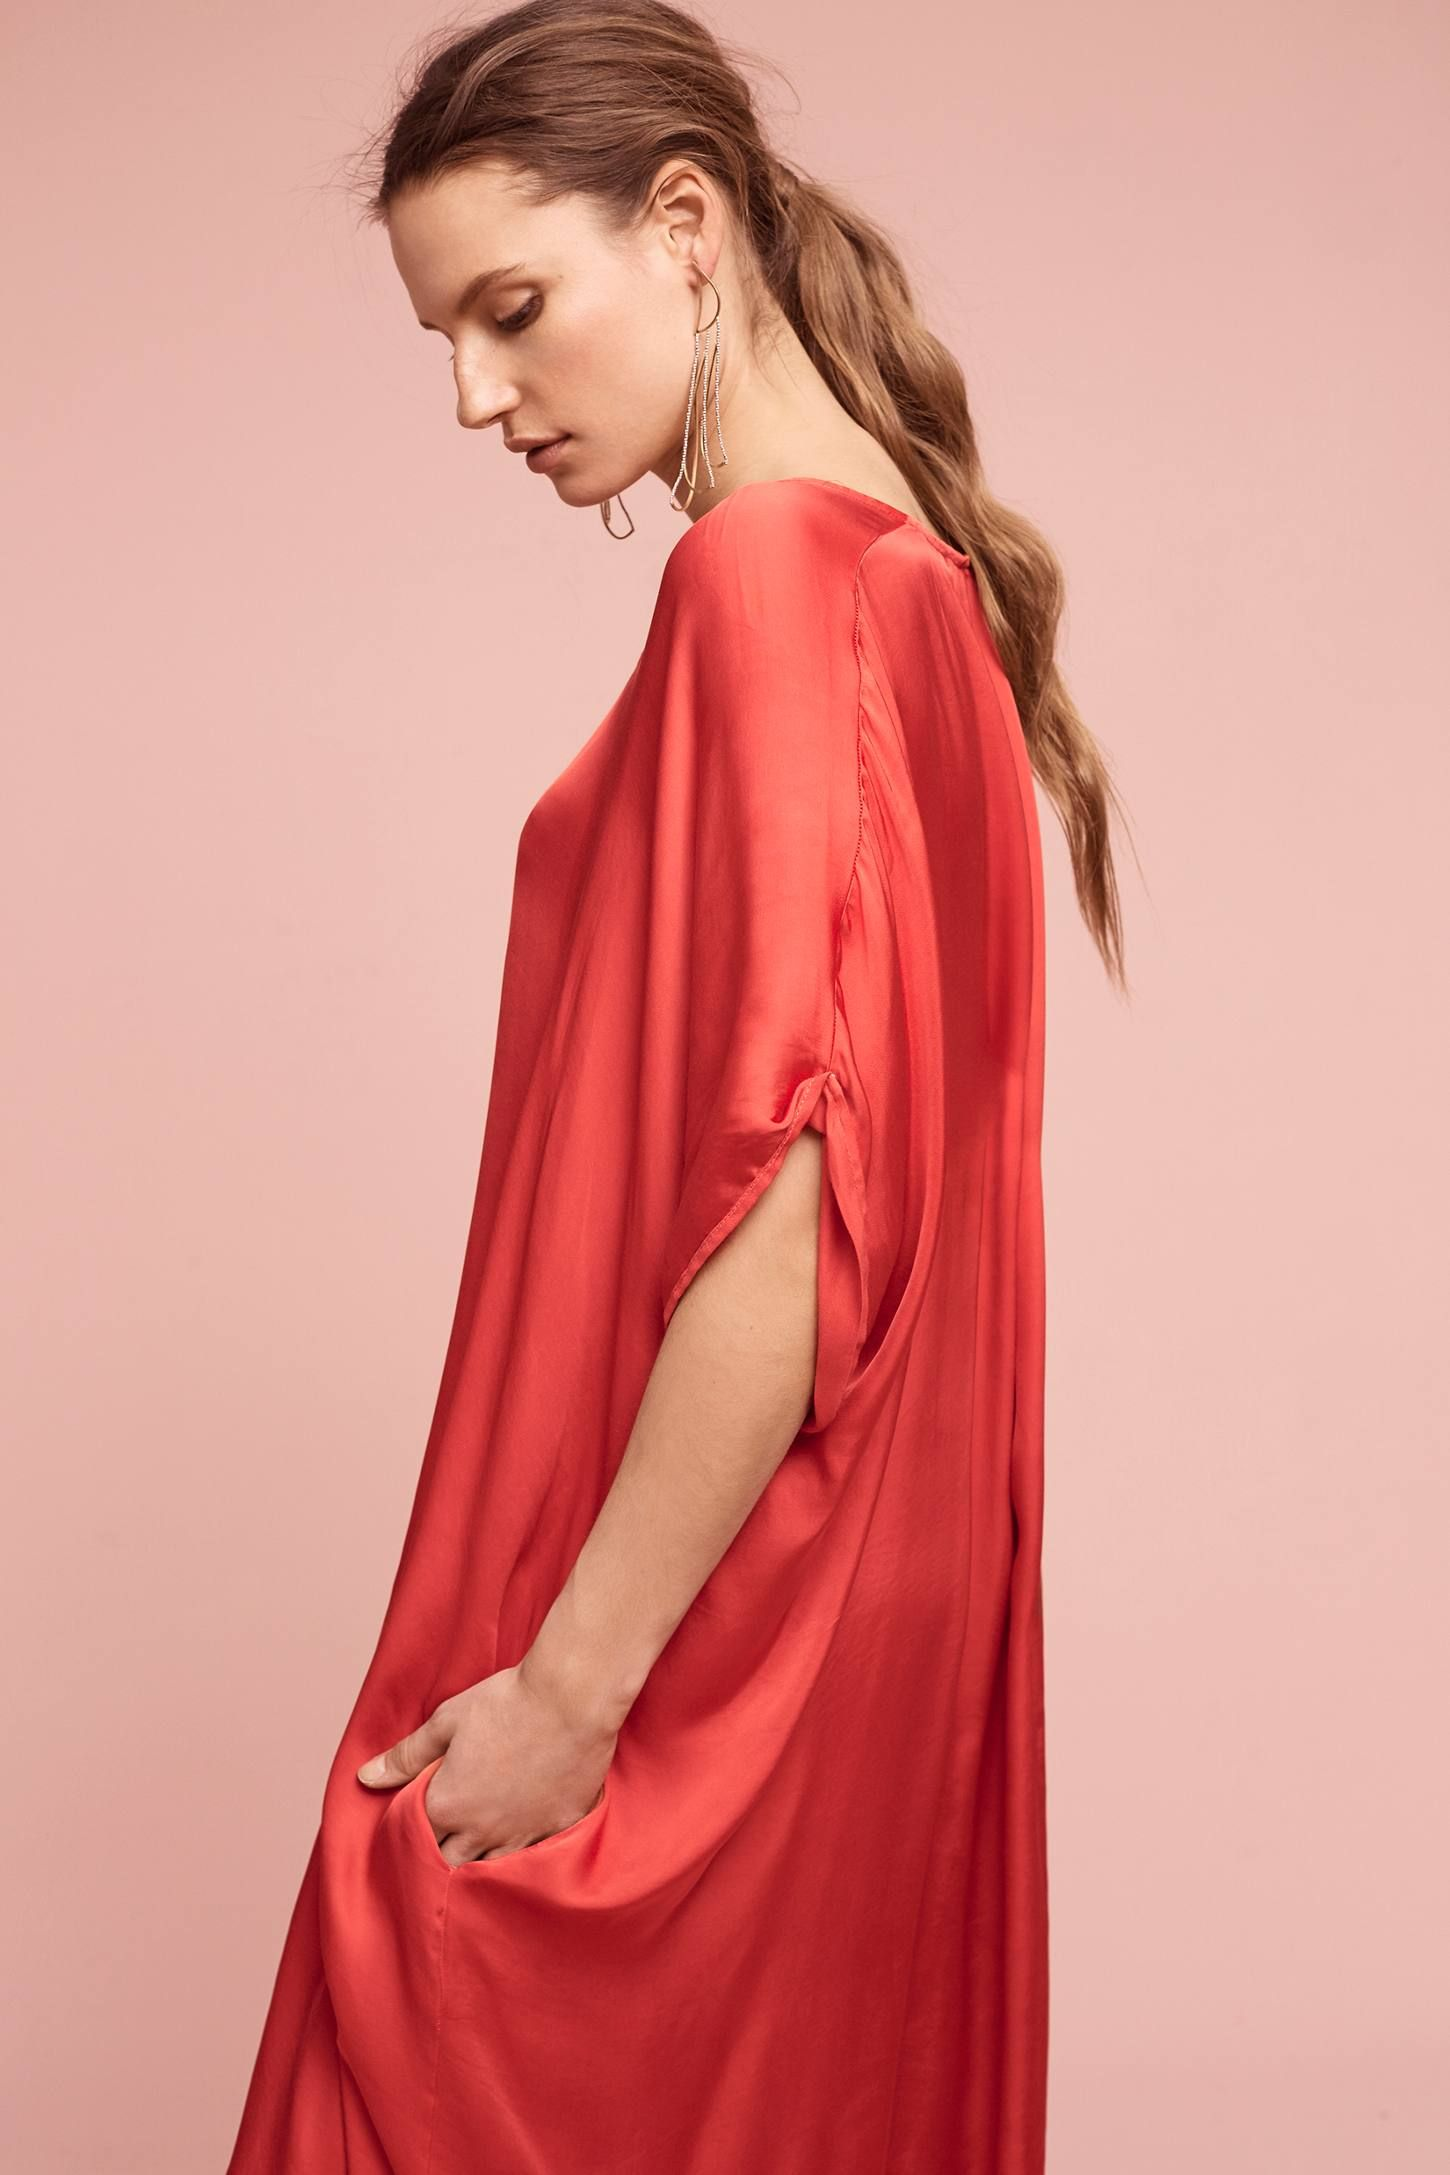 a2673f78f19a9 Shop the Scarlette Caftan Dress and more Anthropologie at Anthropologie  today. Read customer reviews, discover product details and more.